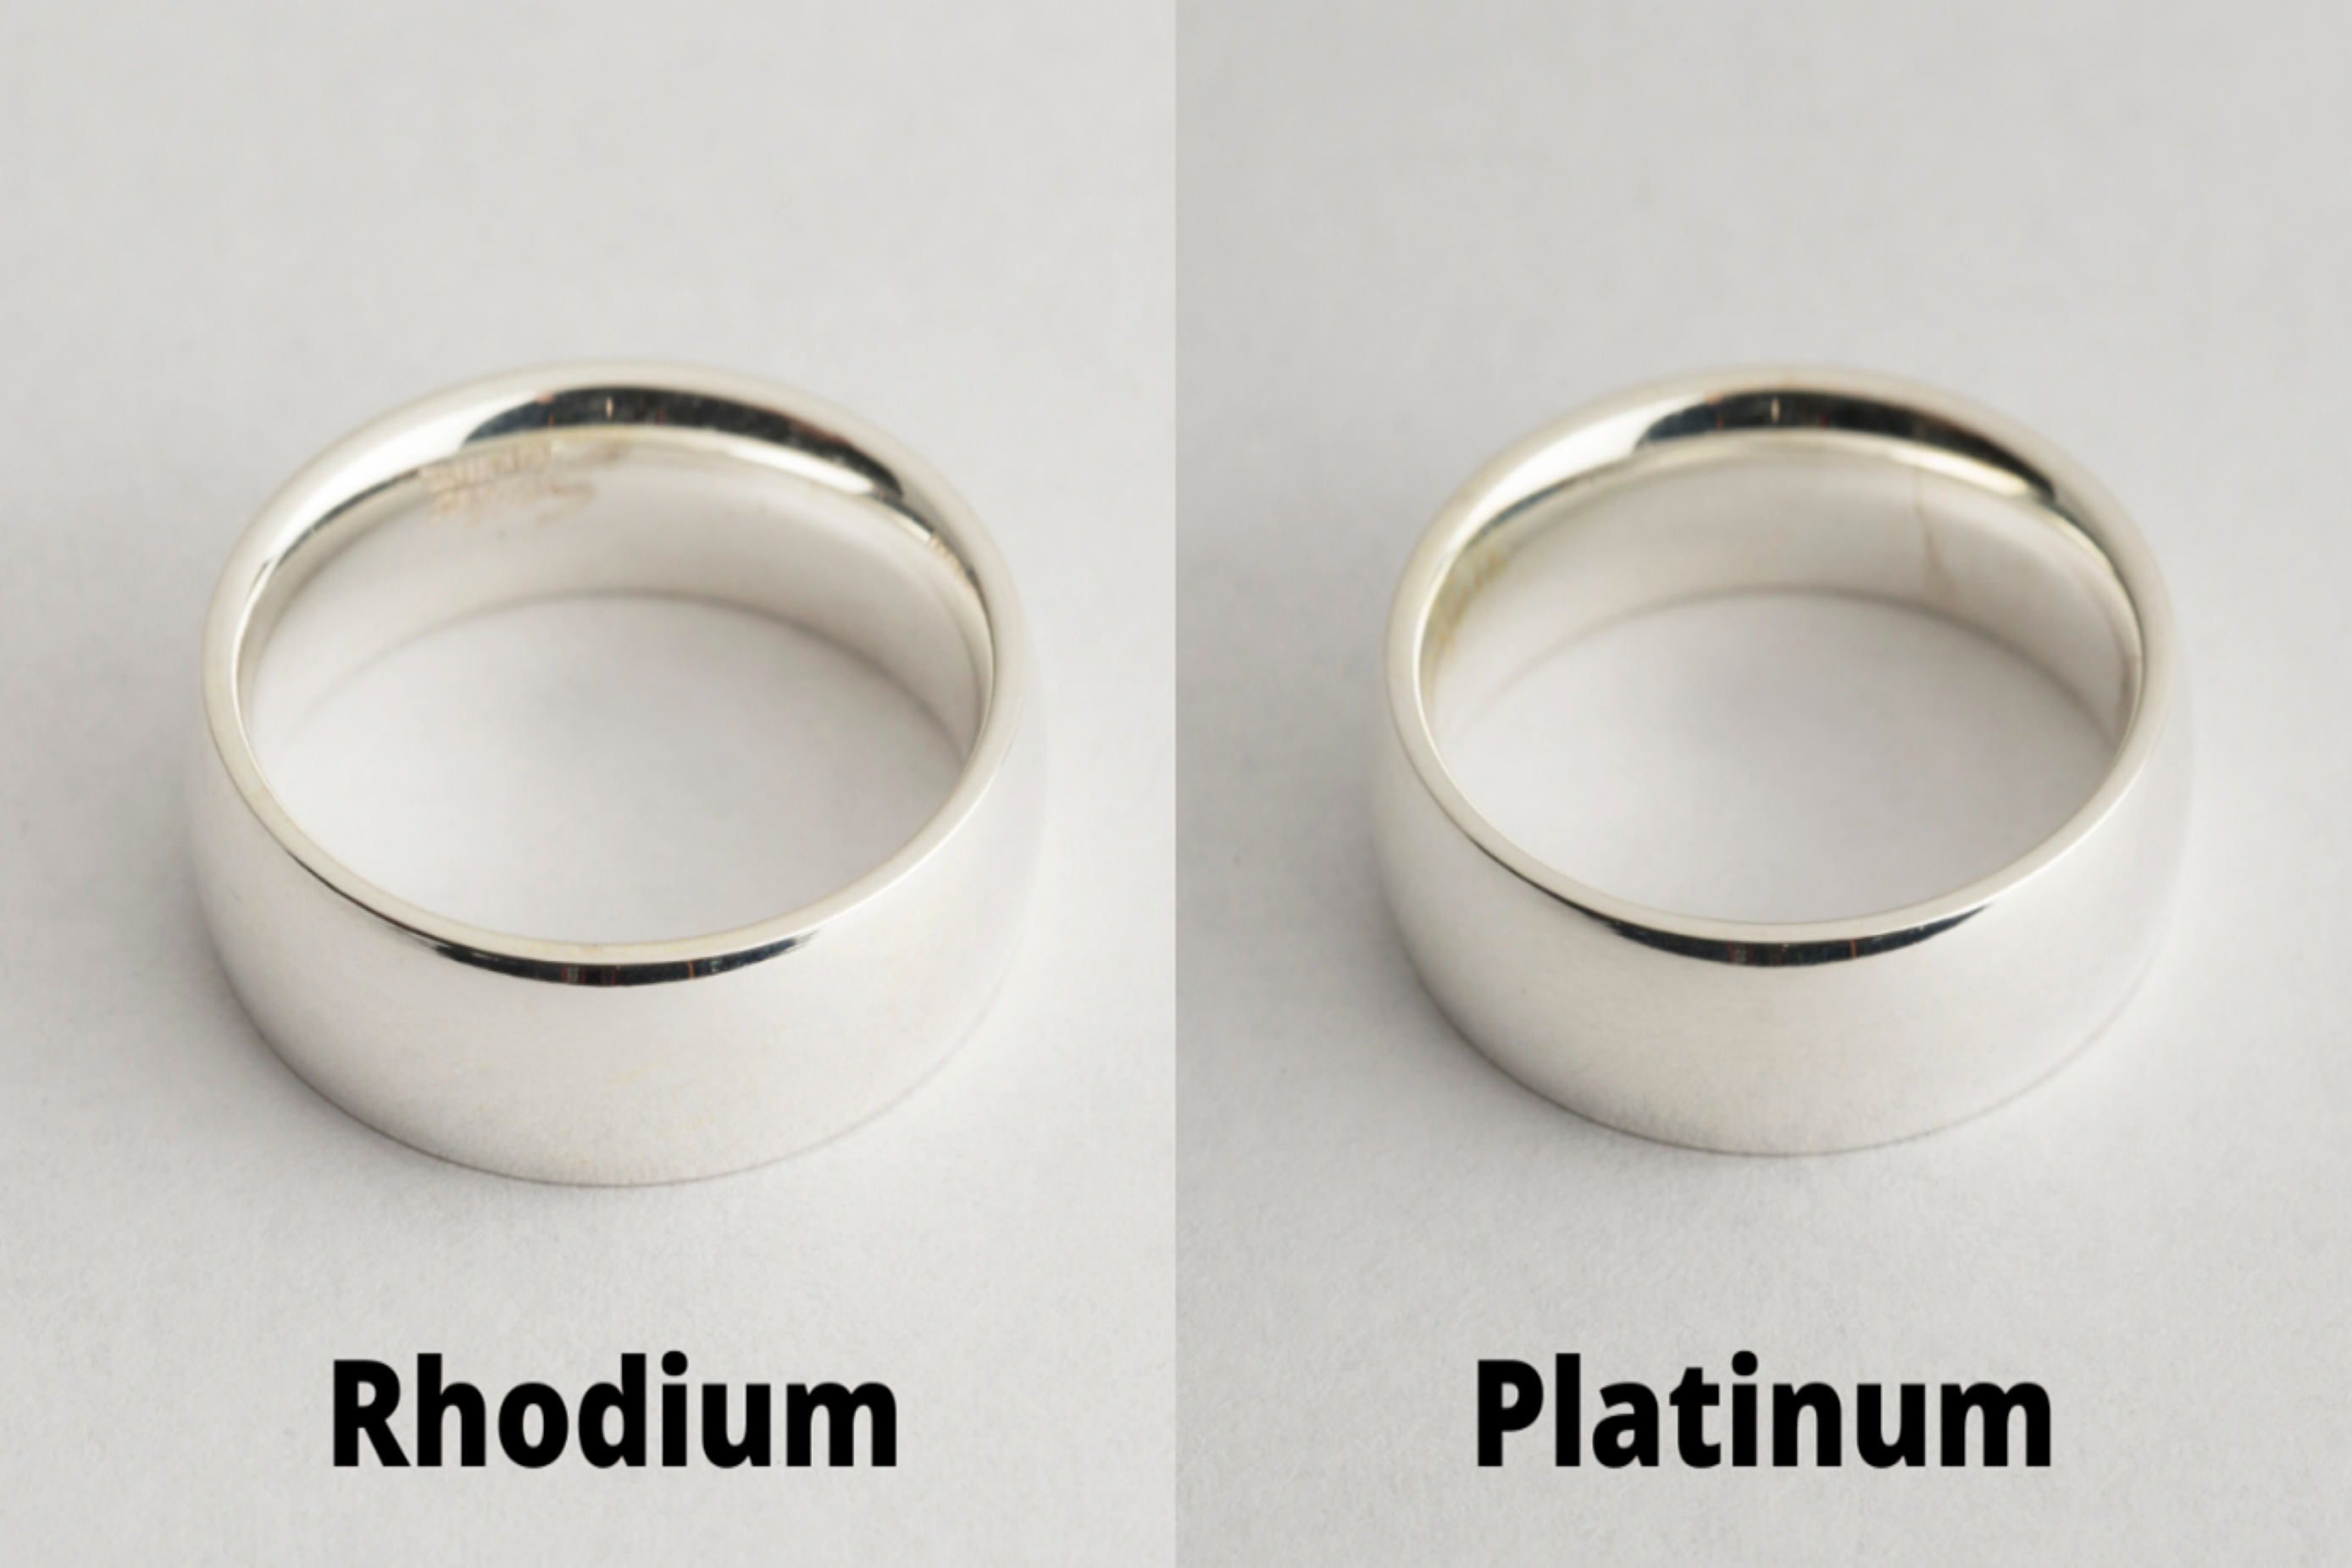 Composite photo comparing two rings plated in platinum and rhodium